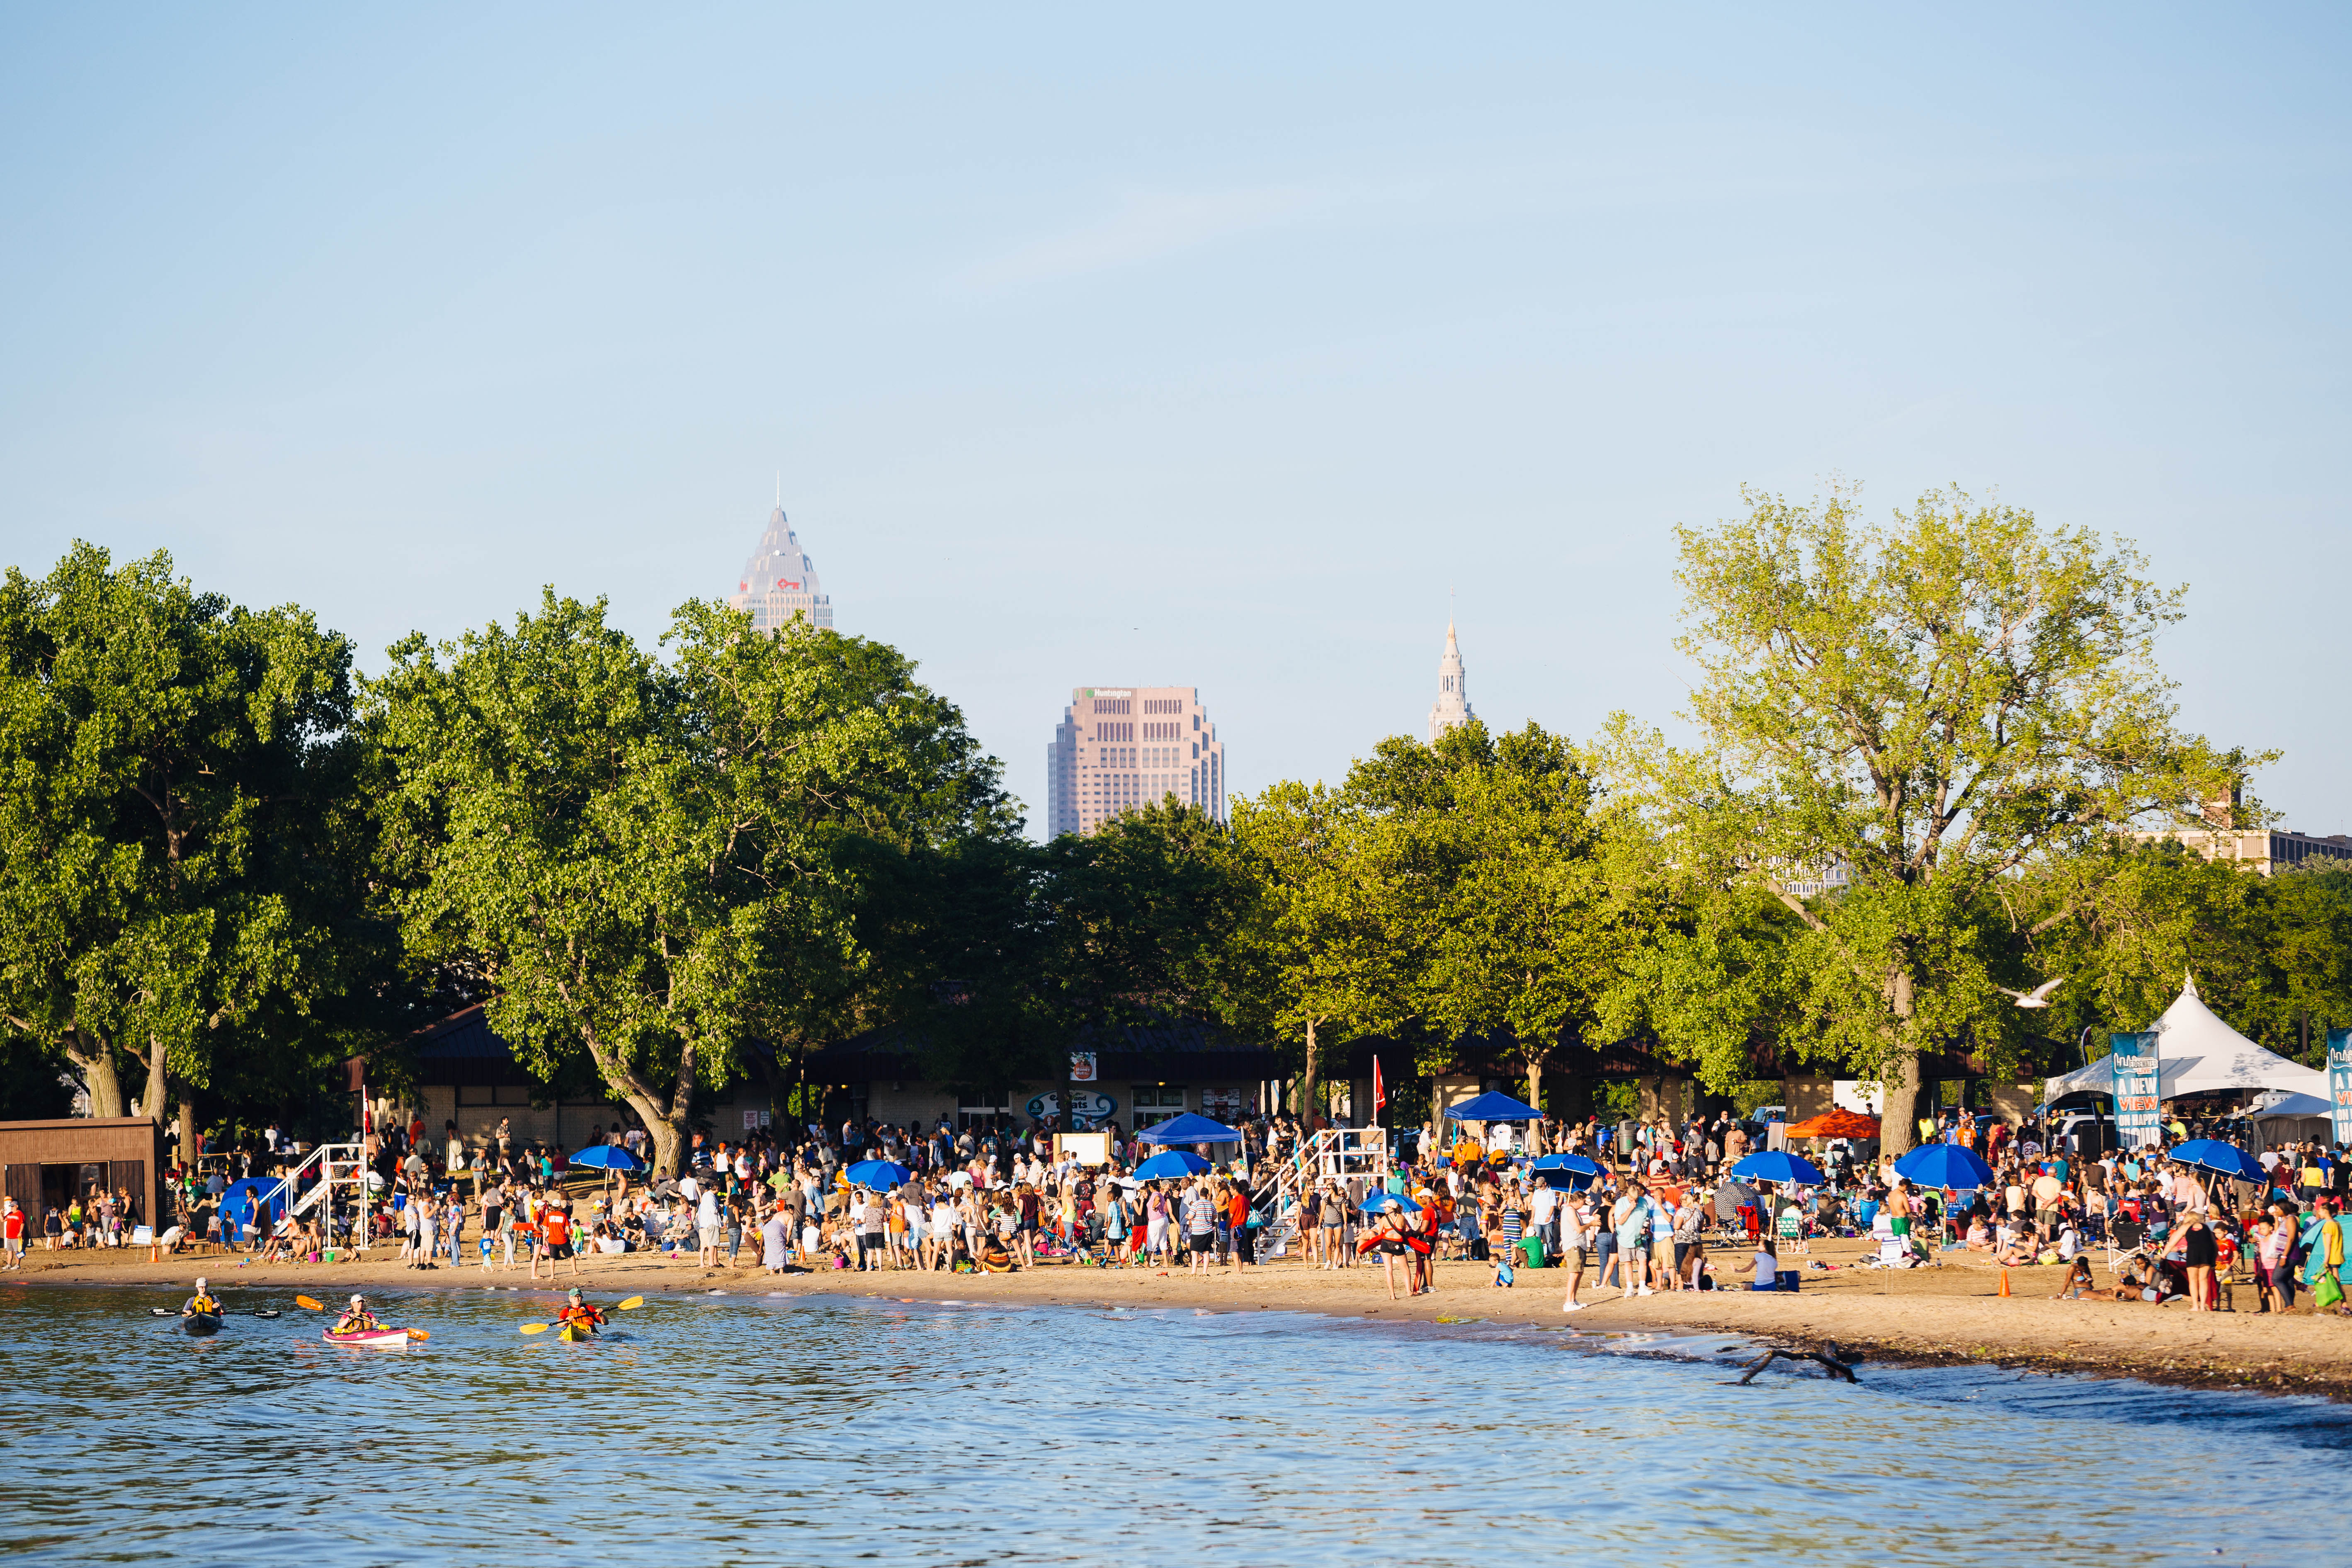 CLEVELAND METROPARKS TO HOST PUBLIC MEETINGS ON FUTURE OF LAKEFRONT PARKS